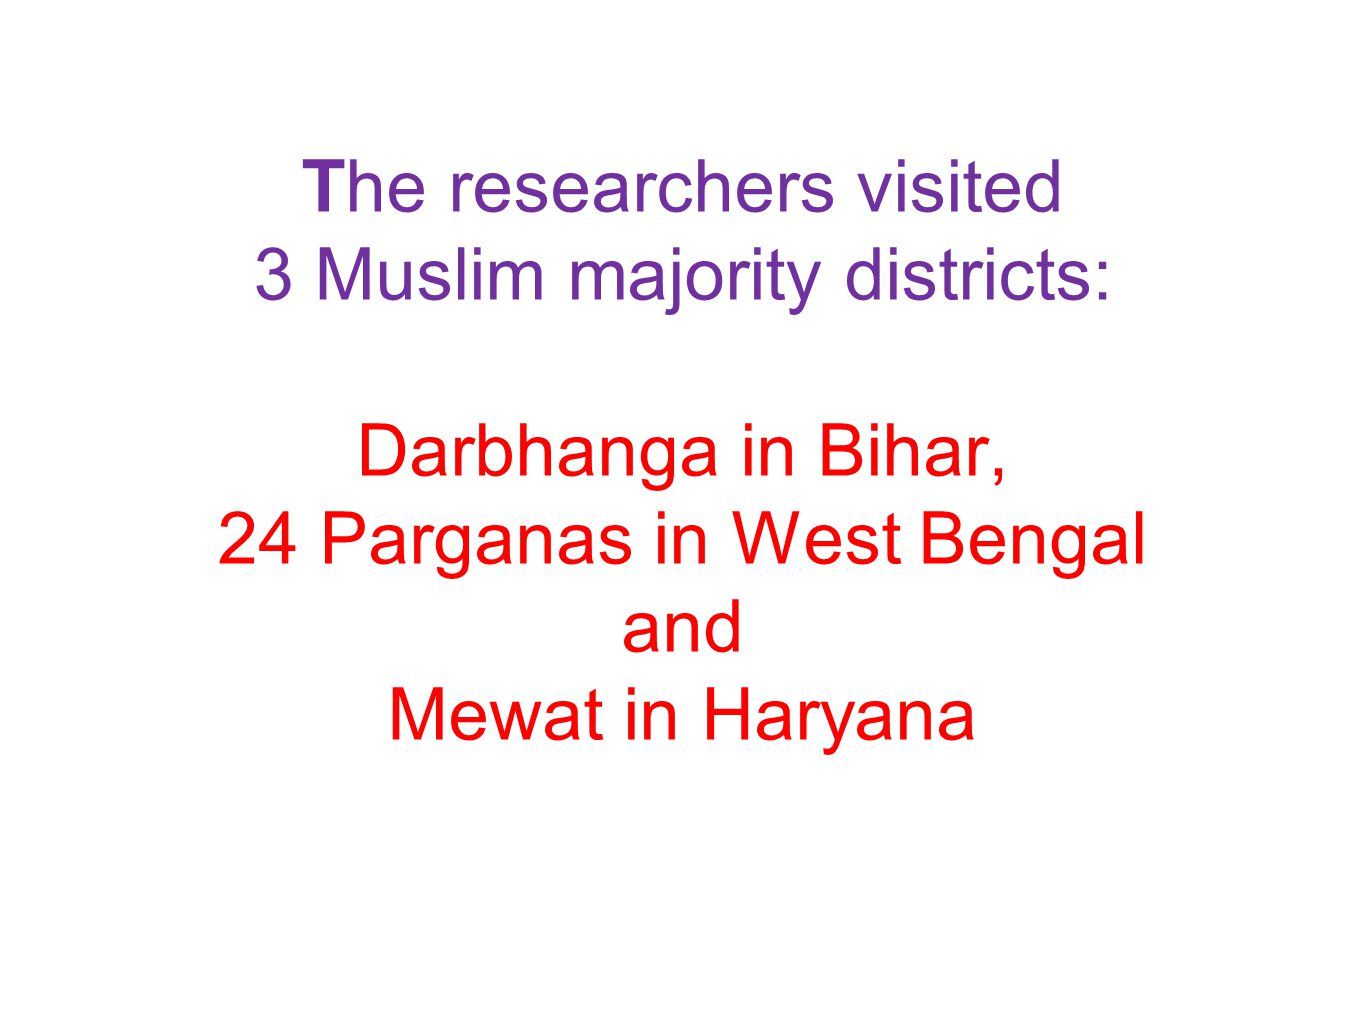 The researchers visited 3 Muslim majority districts: Darbhanga in Bihar, 24 Parganas in West Bengal and Mewat in Haryana